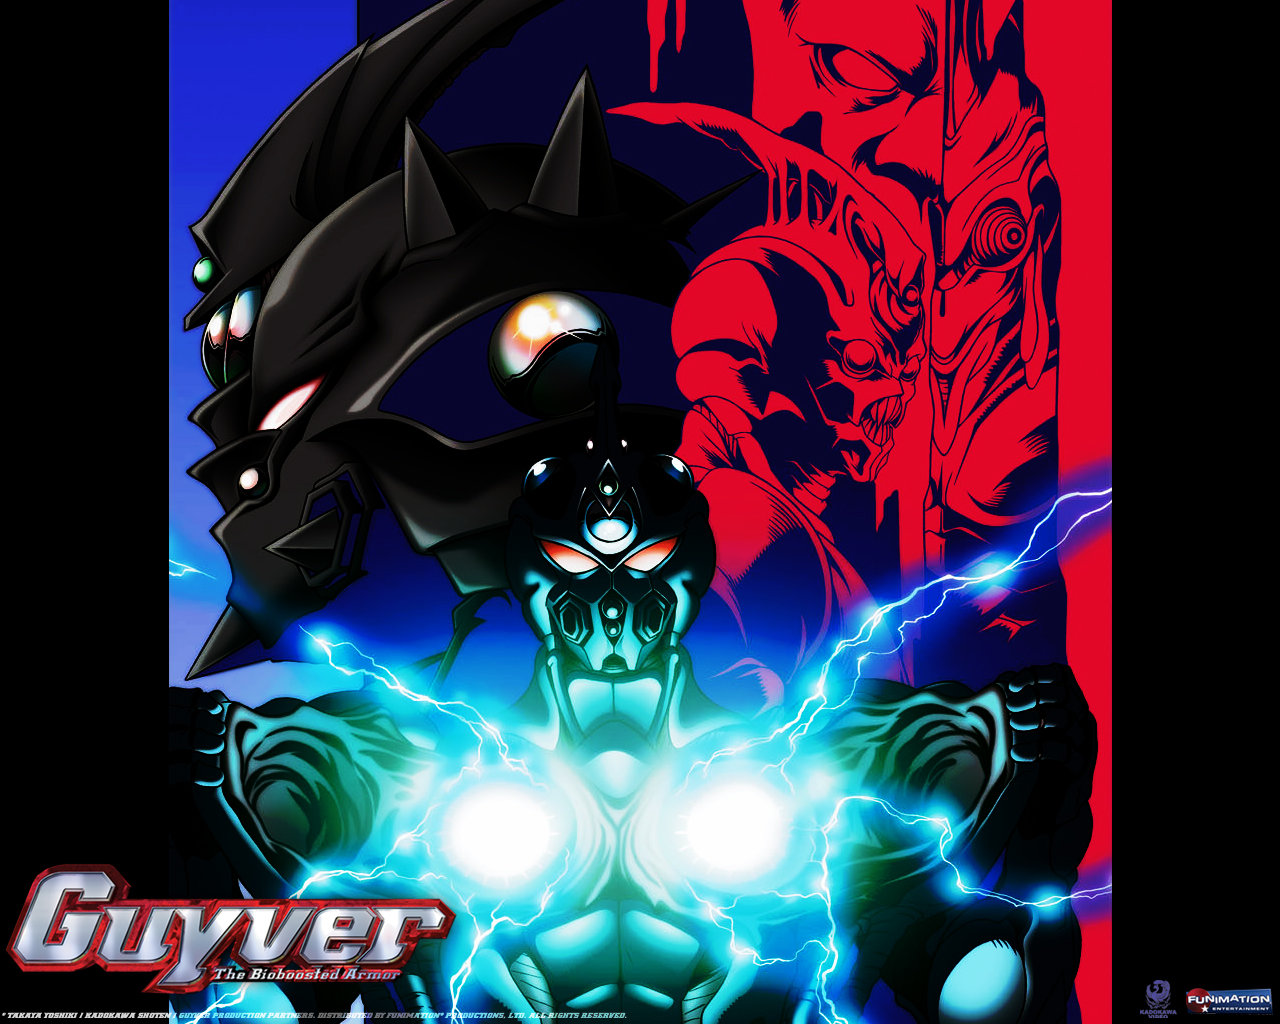 Download hd 1280x1024 Guyver The Bioboosted Armor PC background ID:281942 for free